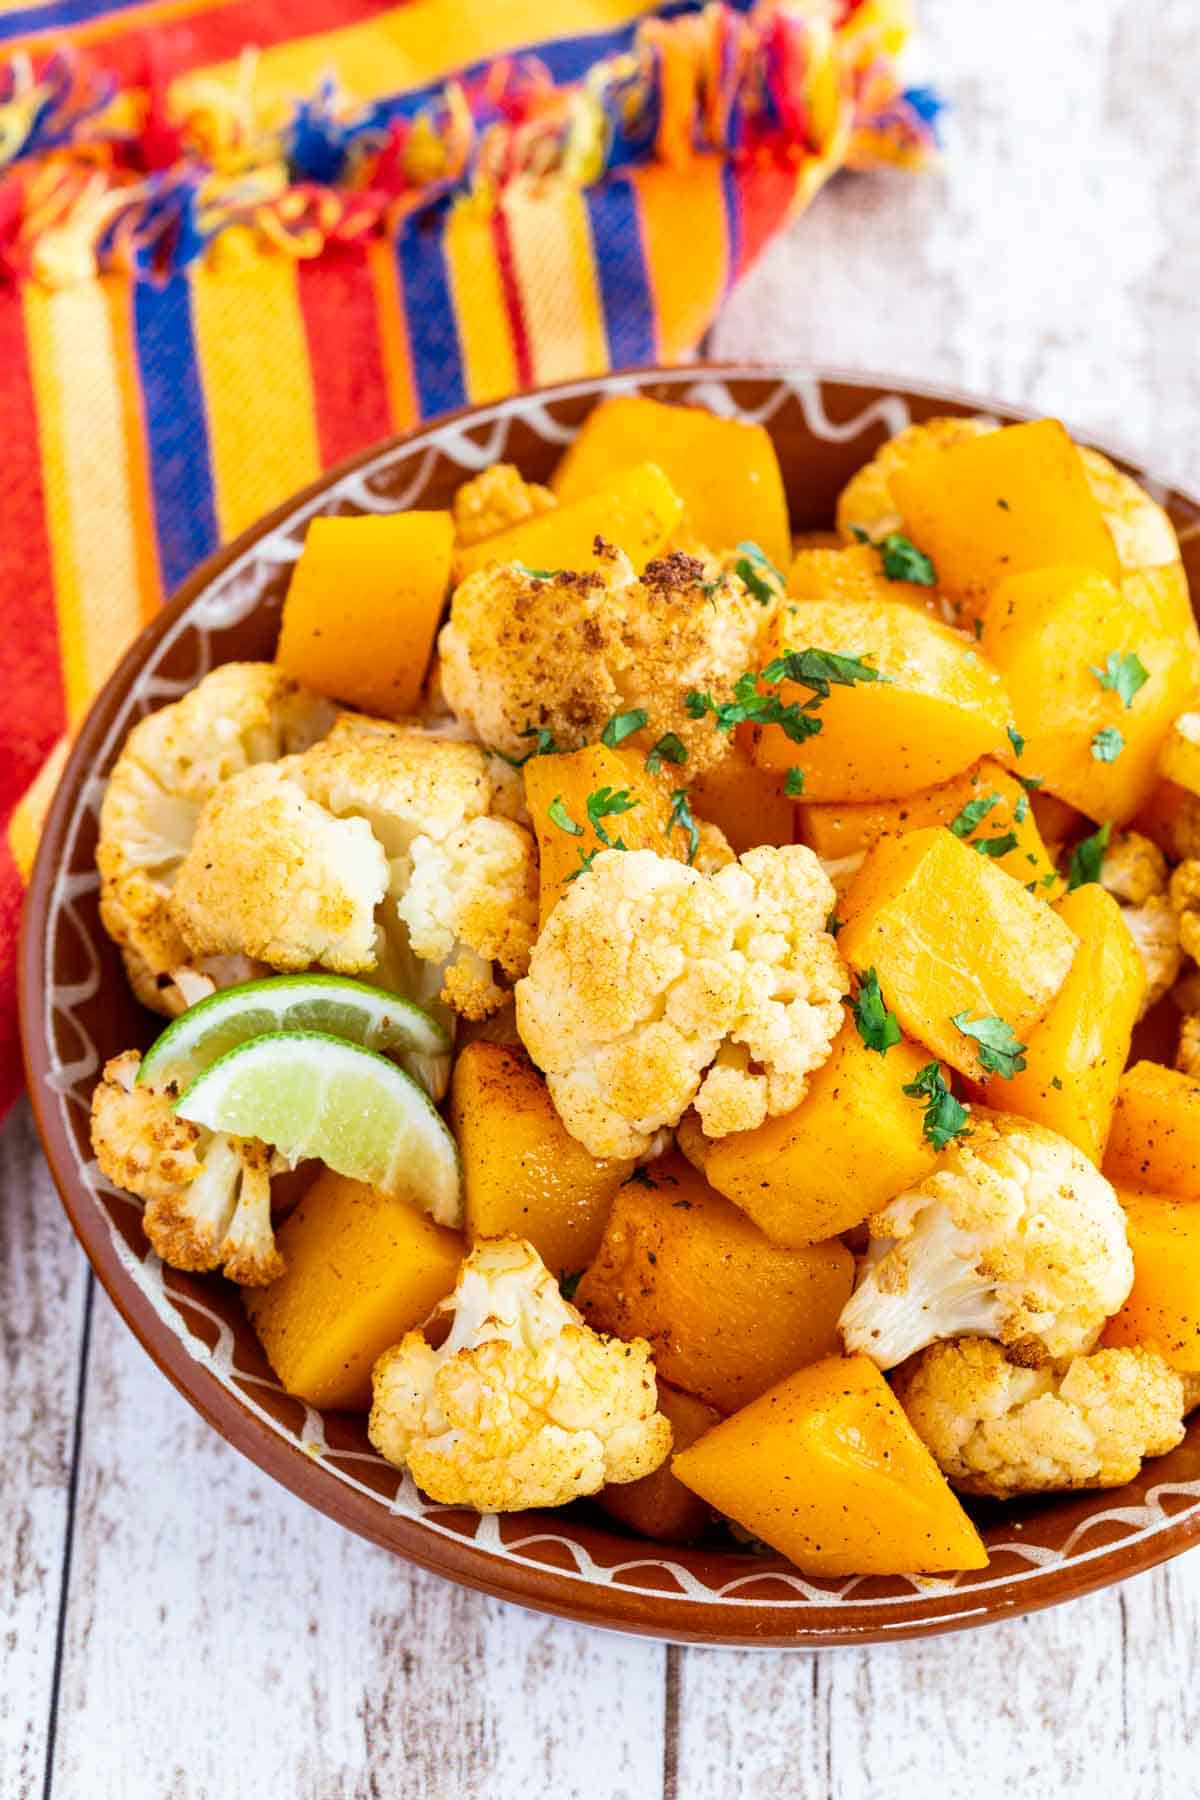 spicy roasted cauliflower and butternut squash garnished with lime slices and minced cilantro in a clay dish on top of a colorful striped cloth napkin